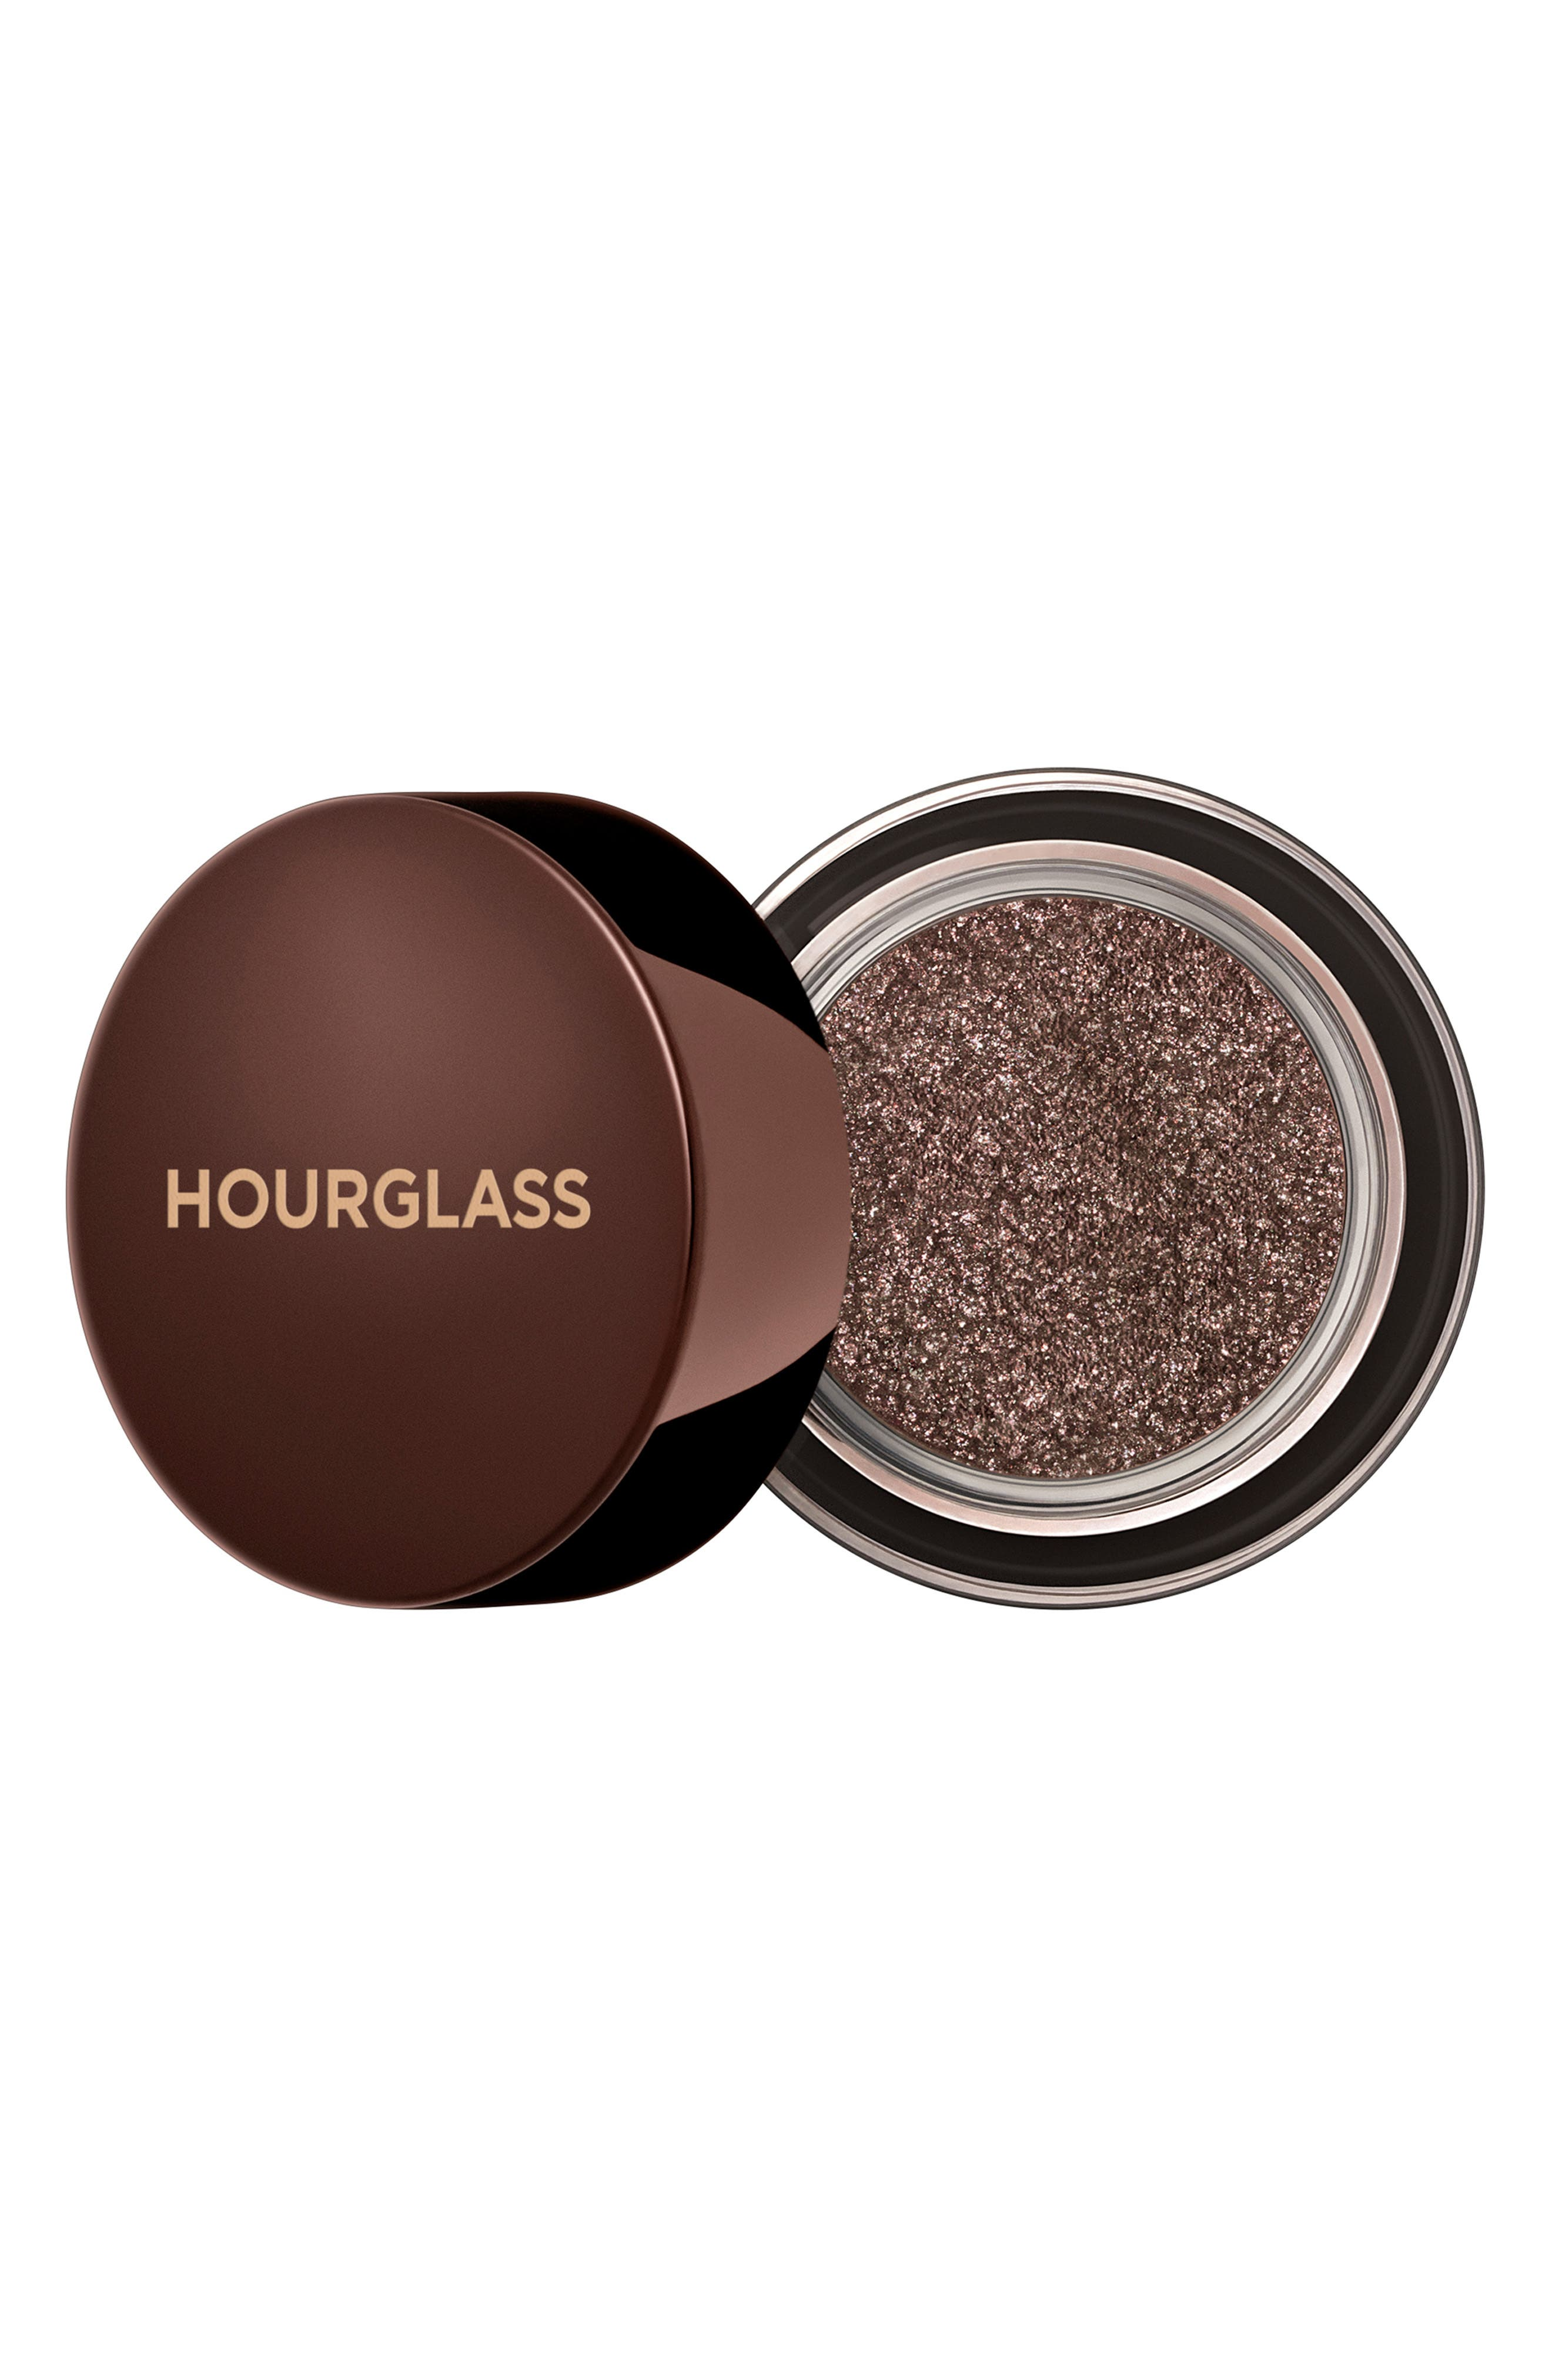 HOURGLASS COSMETICS Scattered Light Glitter Eyeshadow - Smoke